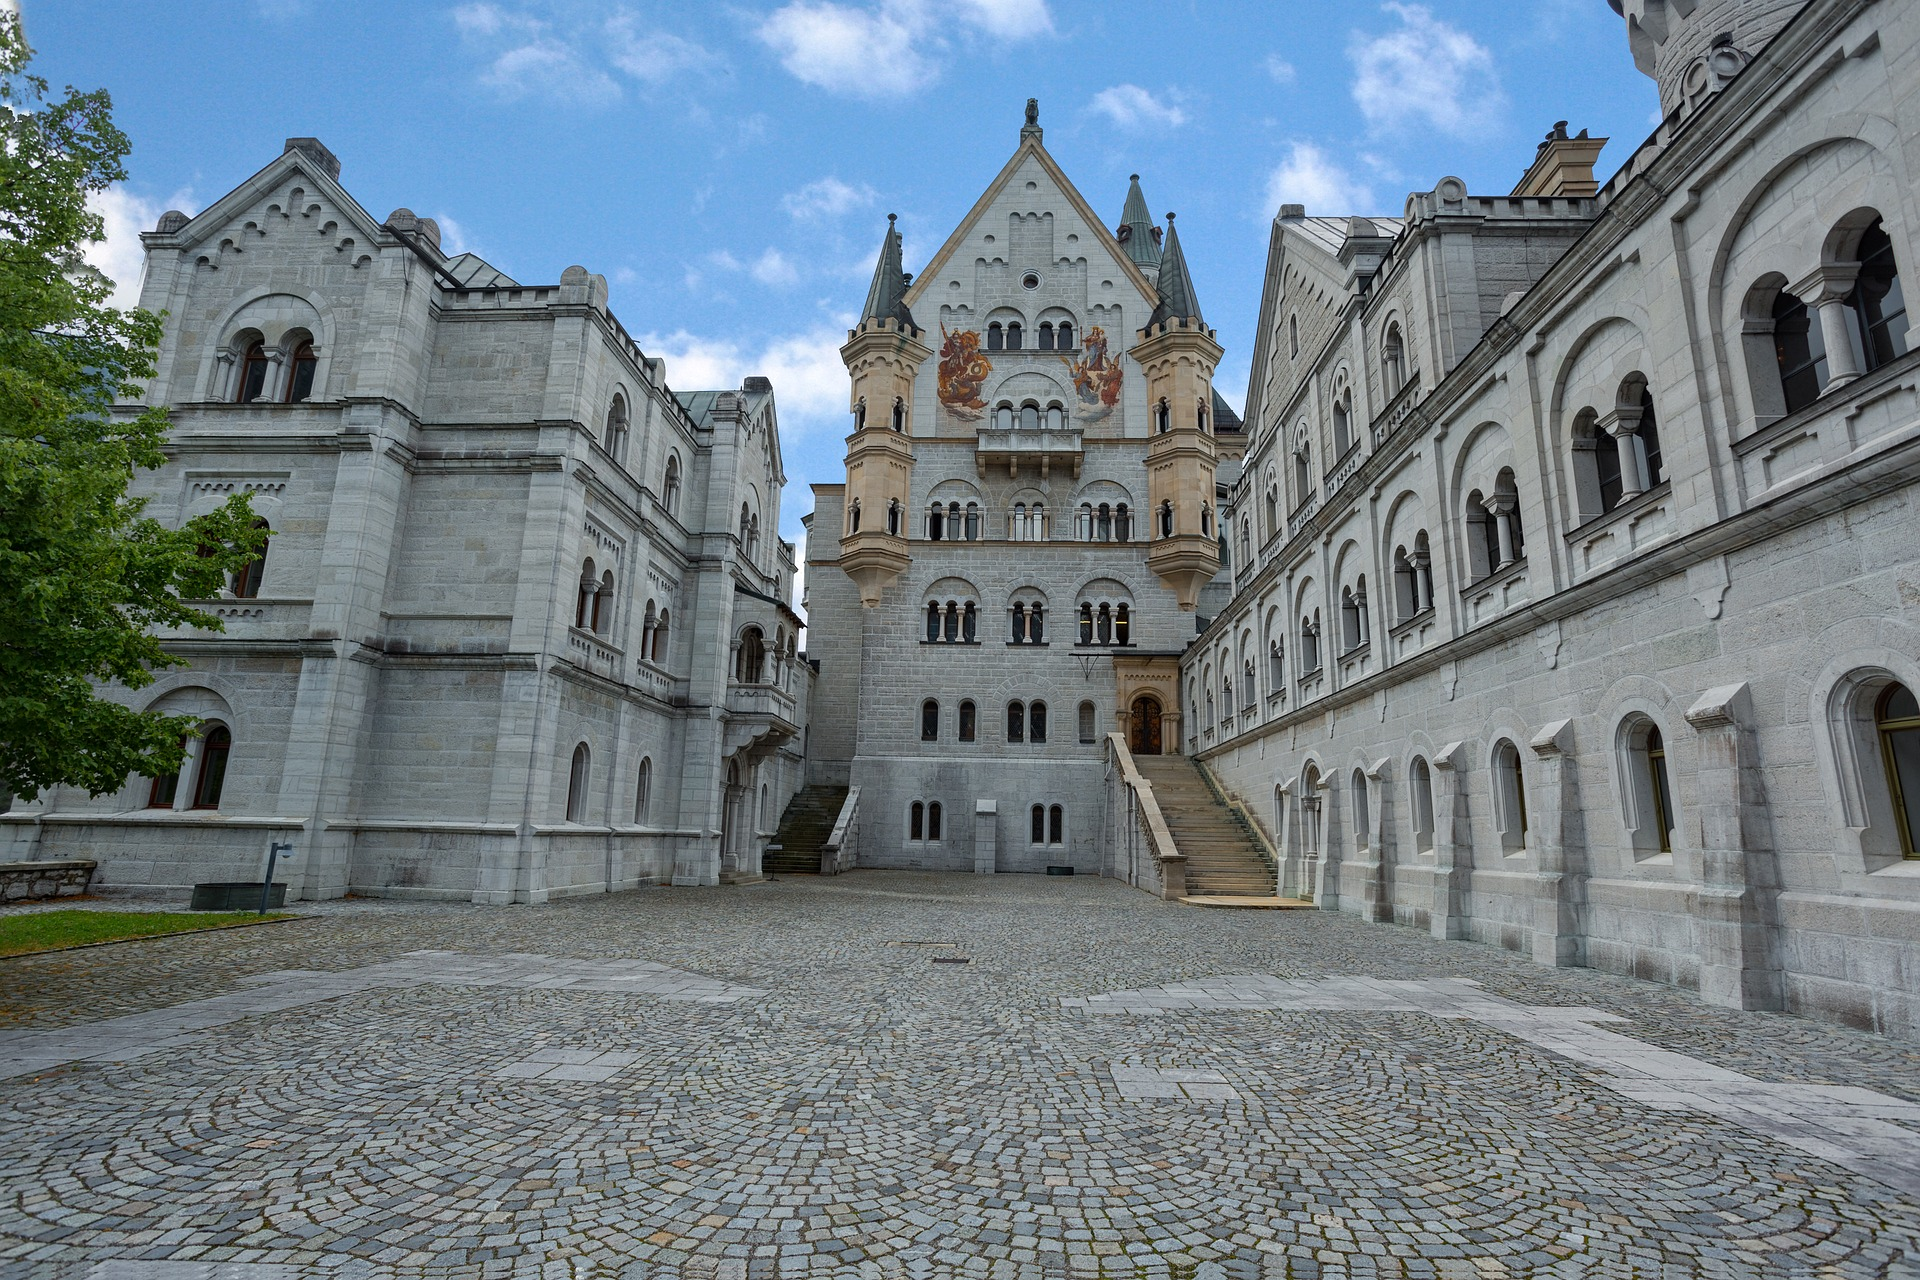 Imperial Heritage - Neuschwanstein Castle, Germany